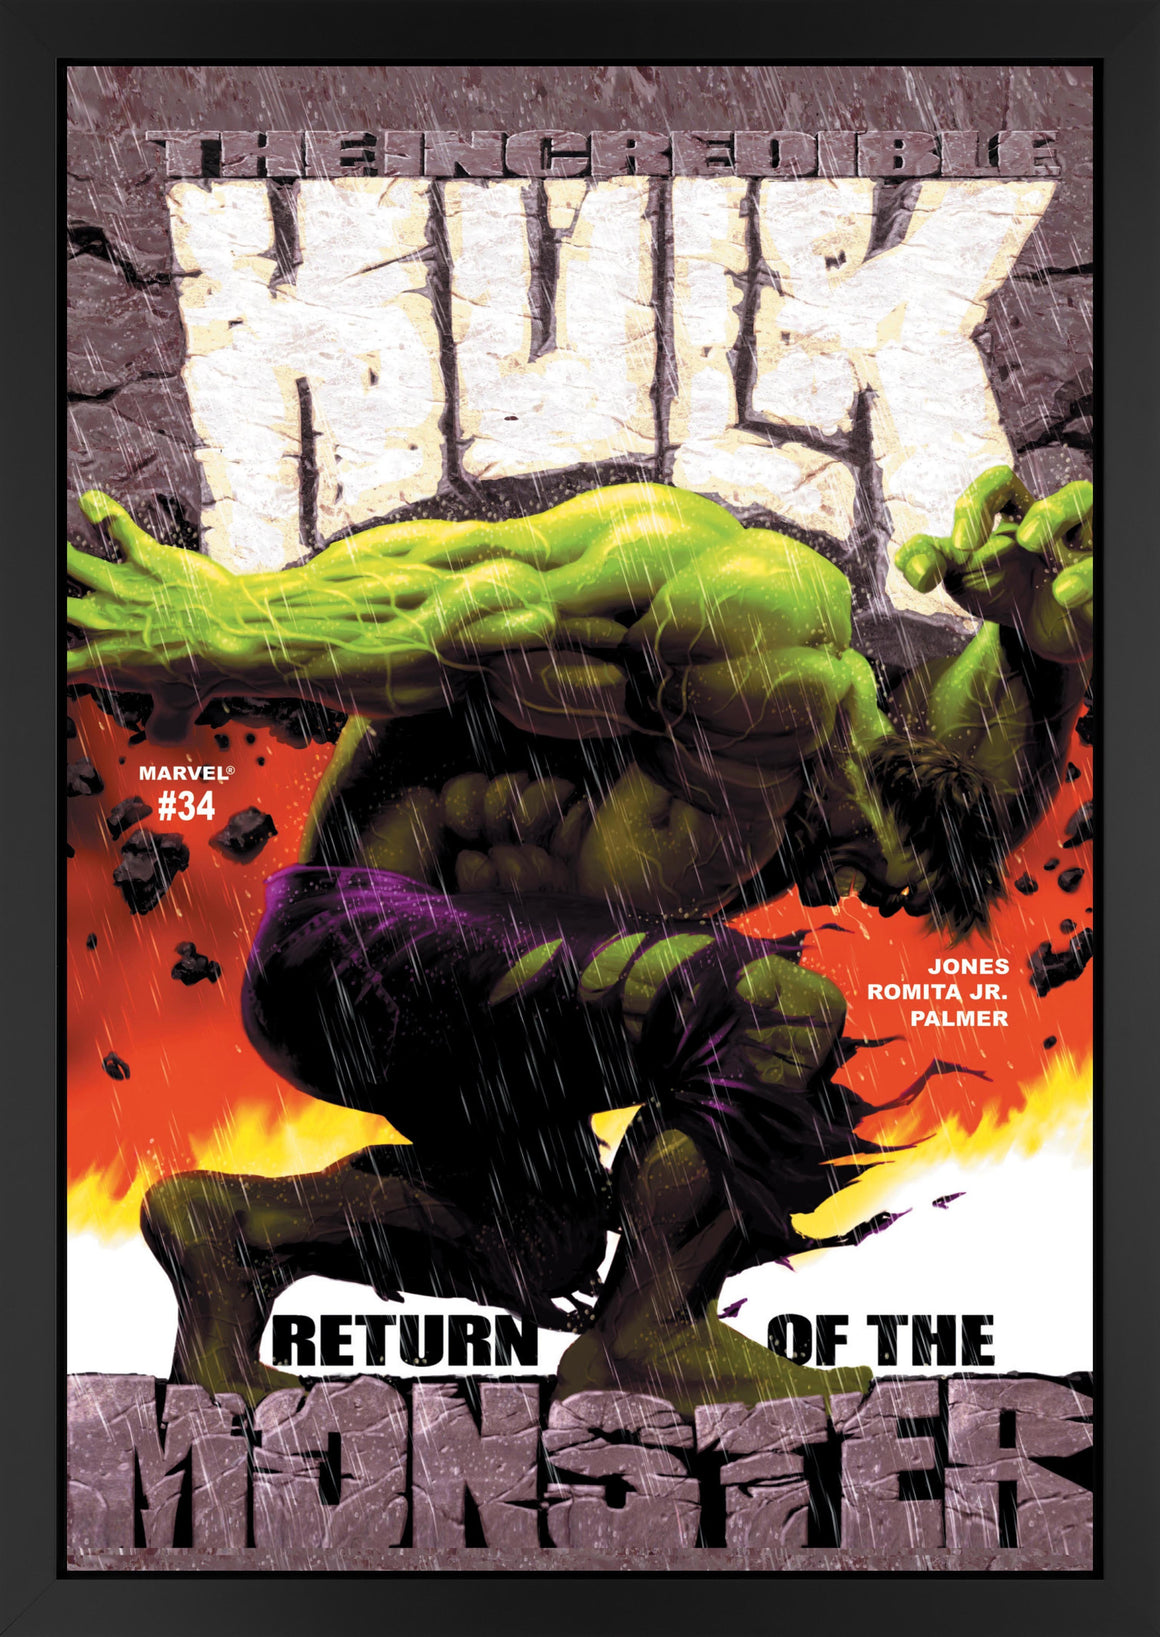 The Incredible Hulk #34 - Return of the Monster - 2017 Stan Lee